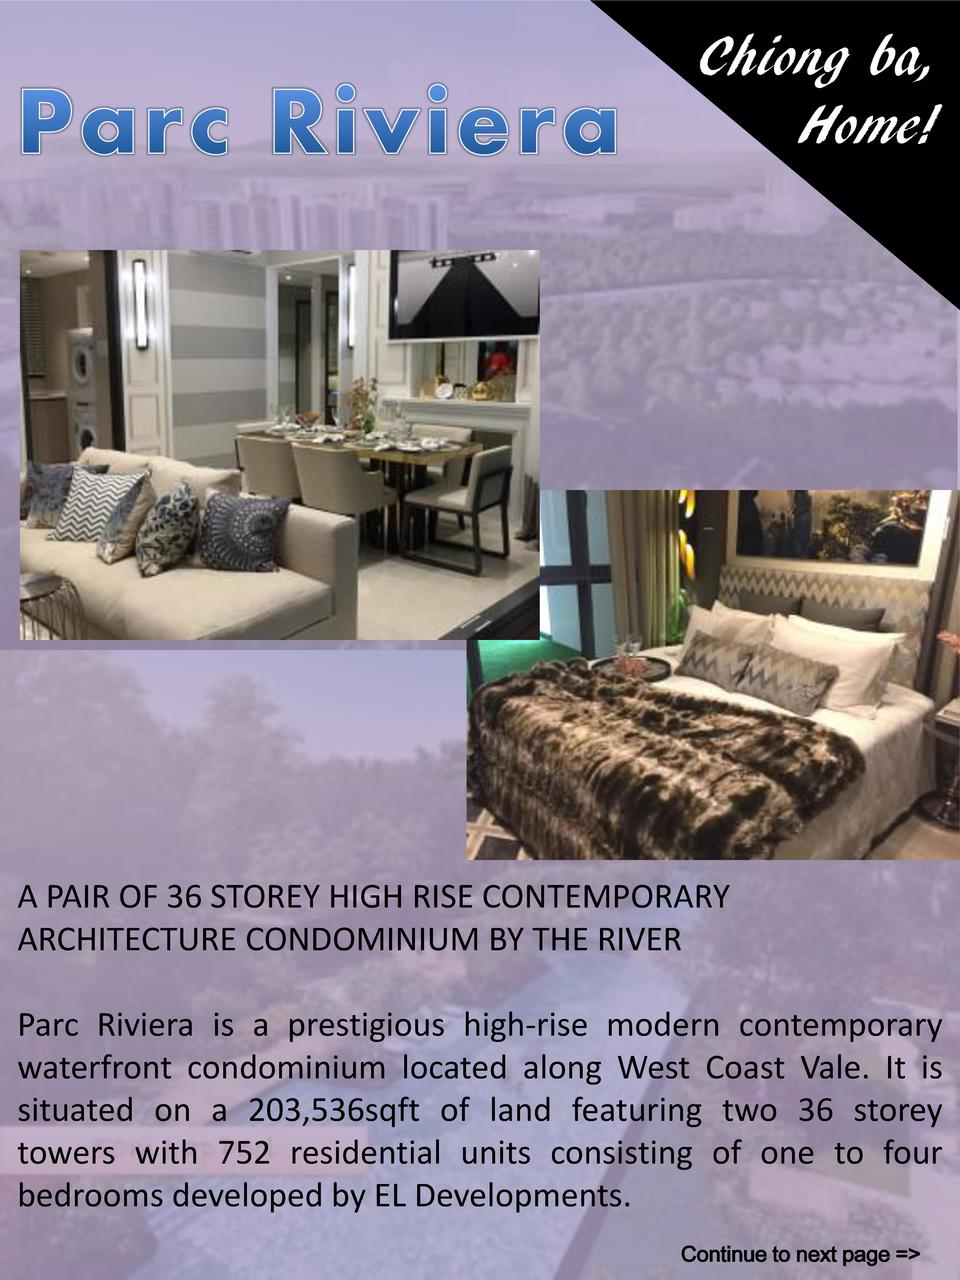 Chiong ba, Home   A PAIR OF 36 STOREY HIGH RISE CONTEMPORARY ARCHITECTURE CONDOMINIUM BY THE RIVER Parc Riviera is a prest...